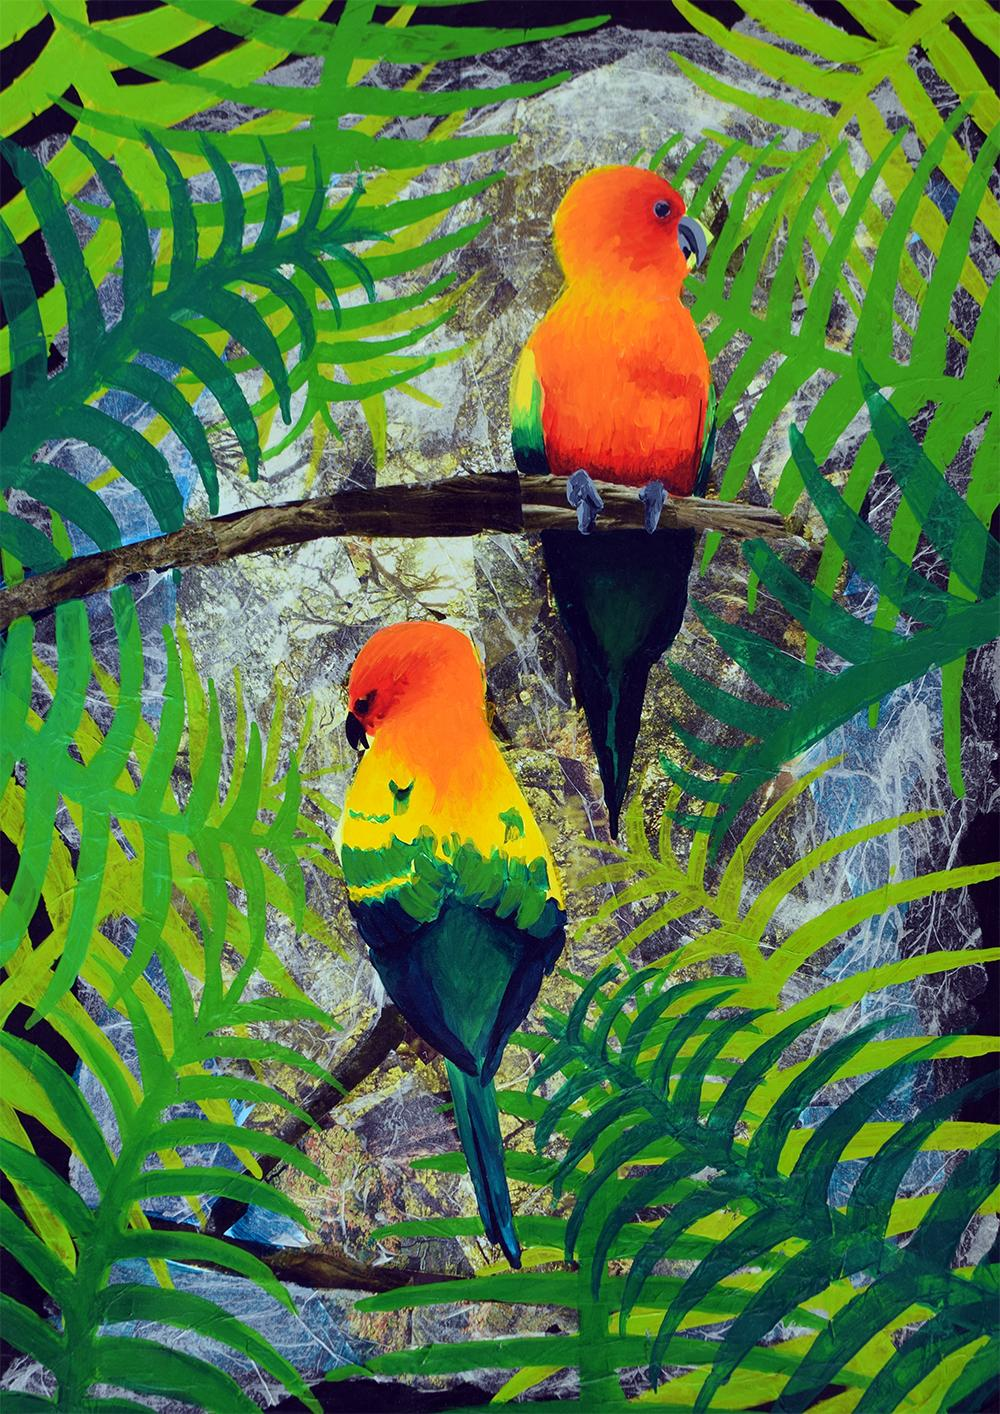 Mixed media painting of two parrots sitting on branches in a tropical paradise